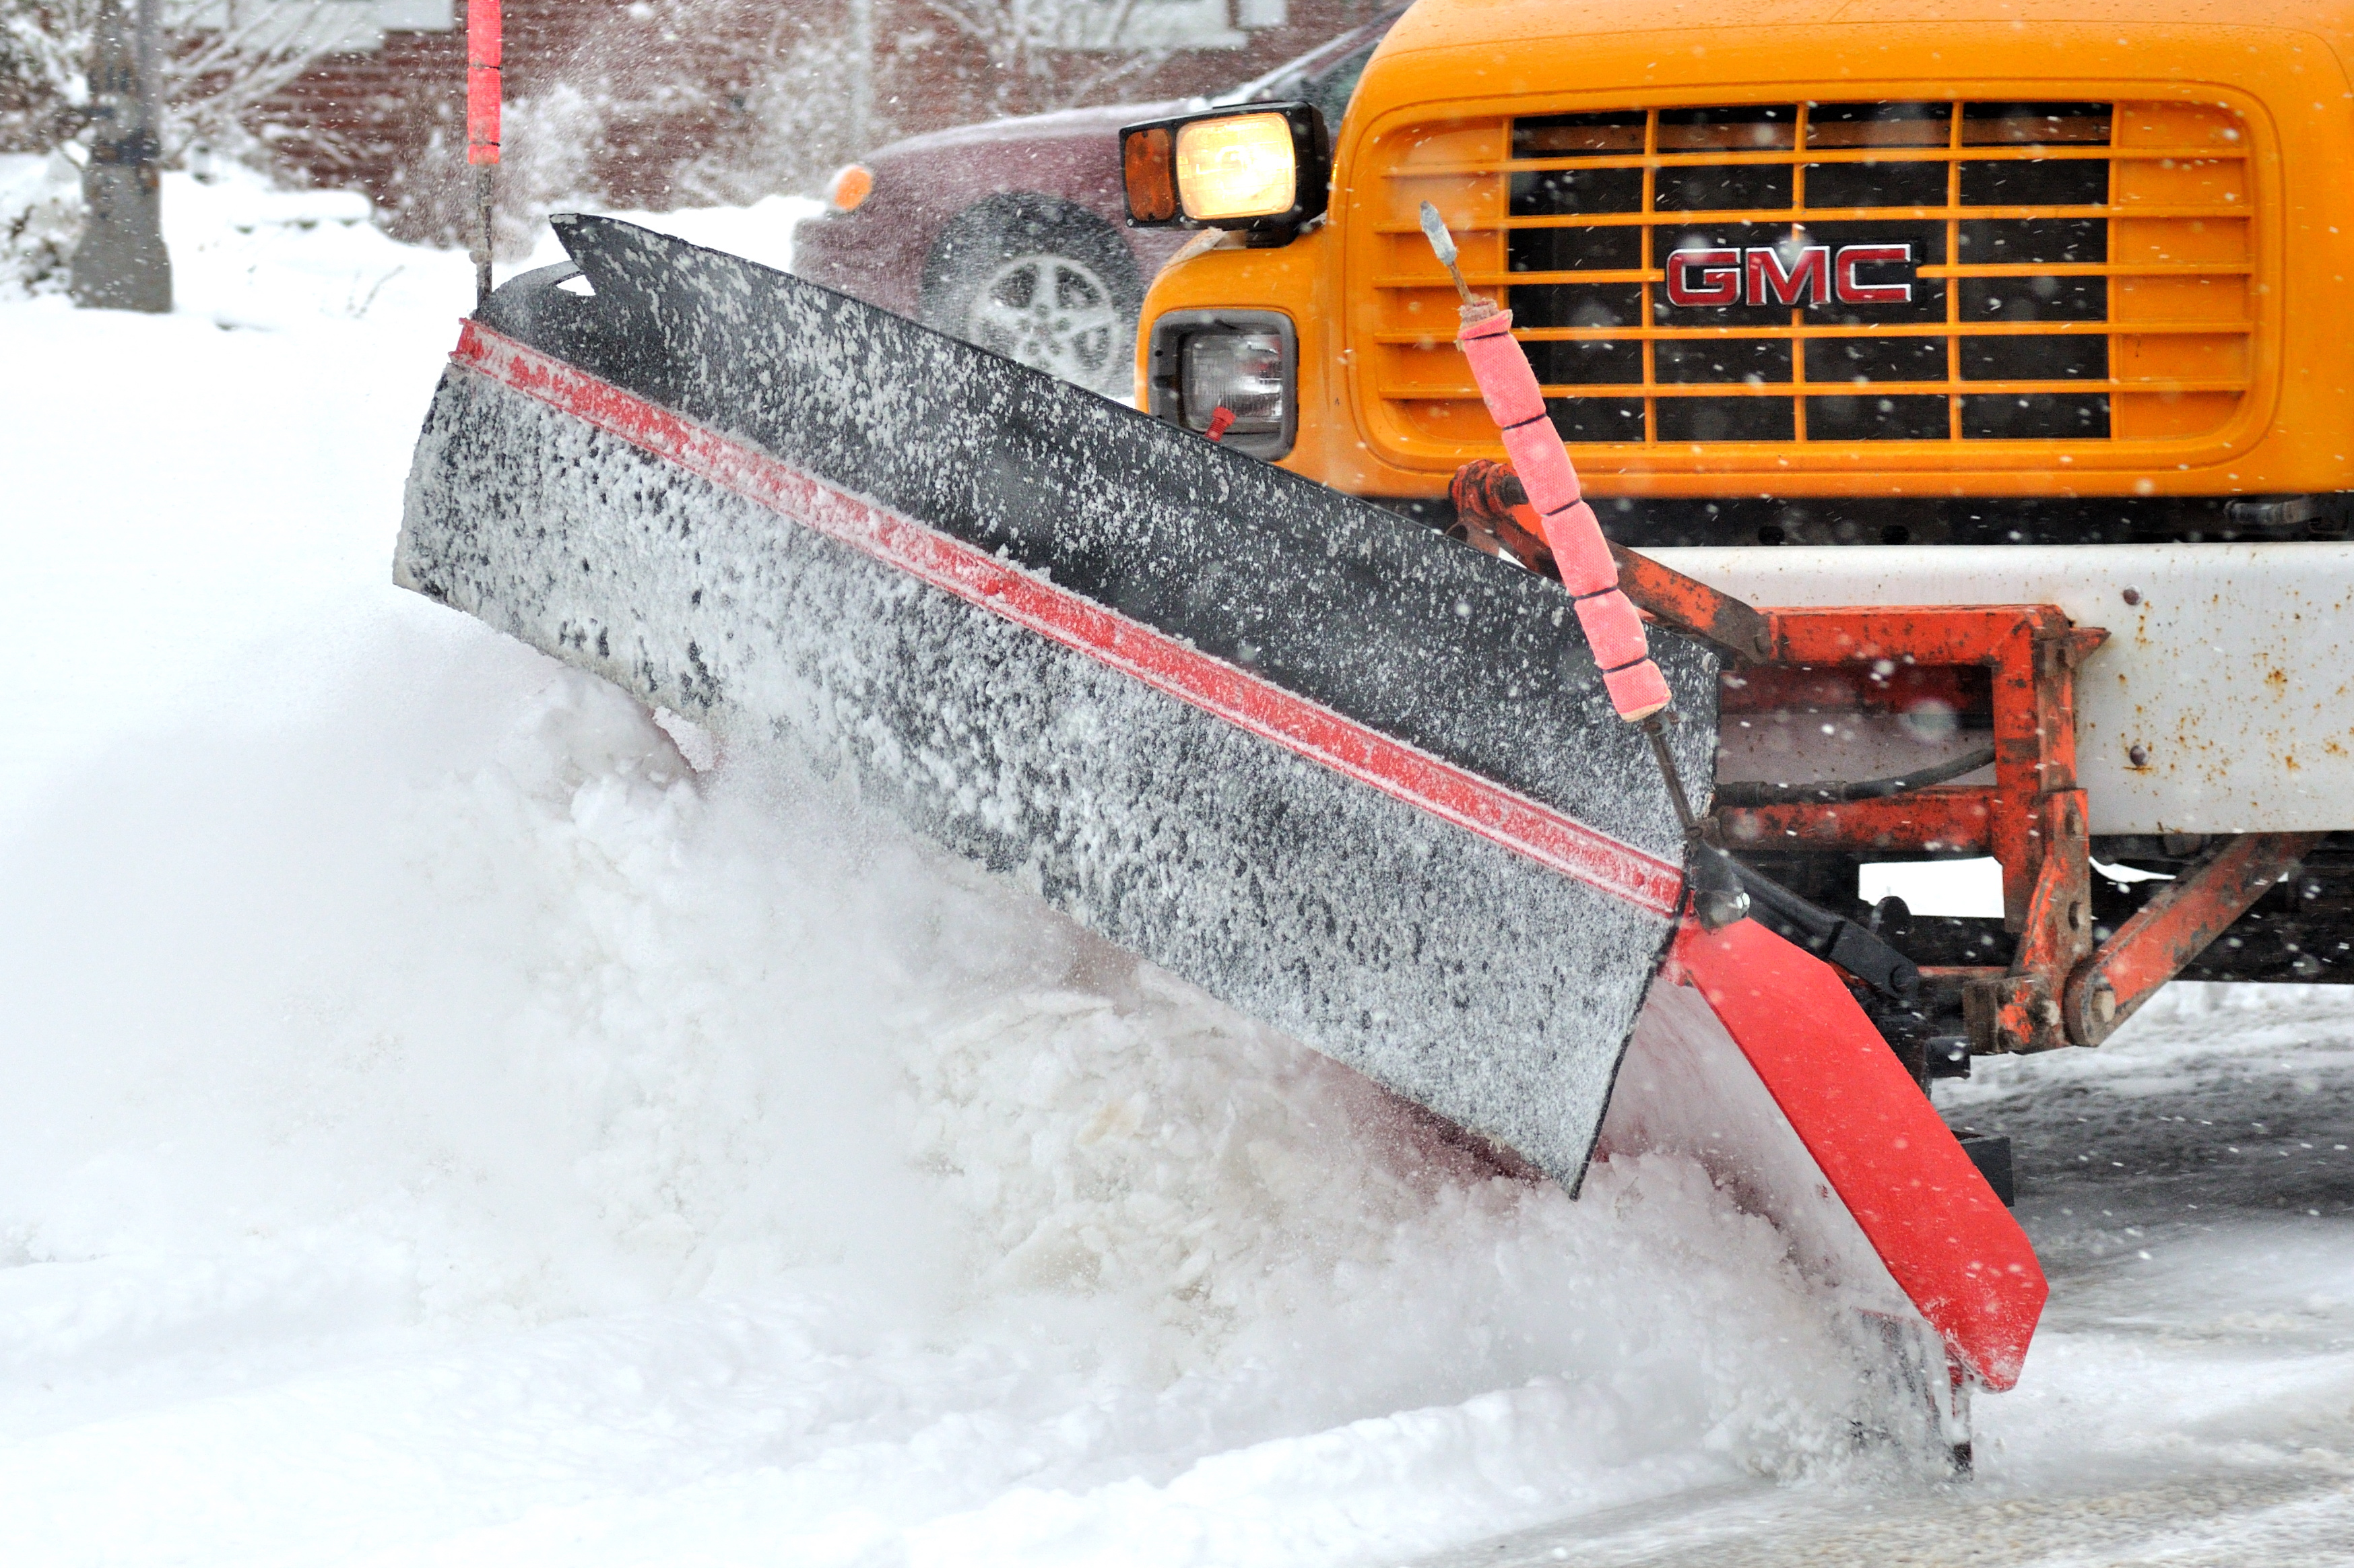 Greenwich has declared a snow emergency effective at 6 p.m. Tuesday, Jan. 21.